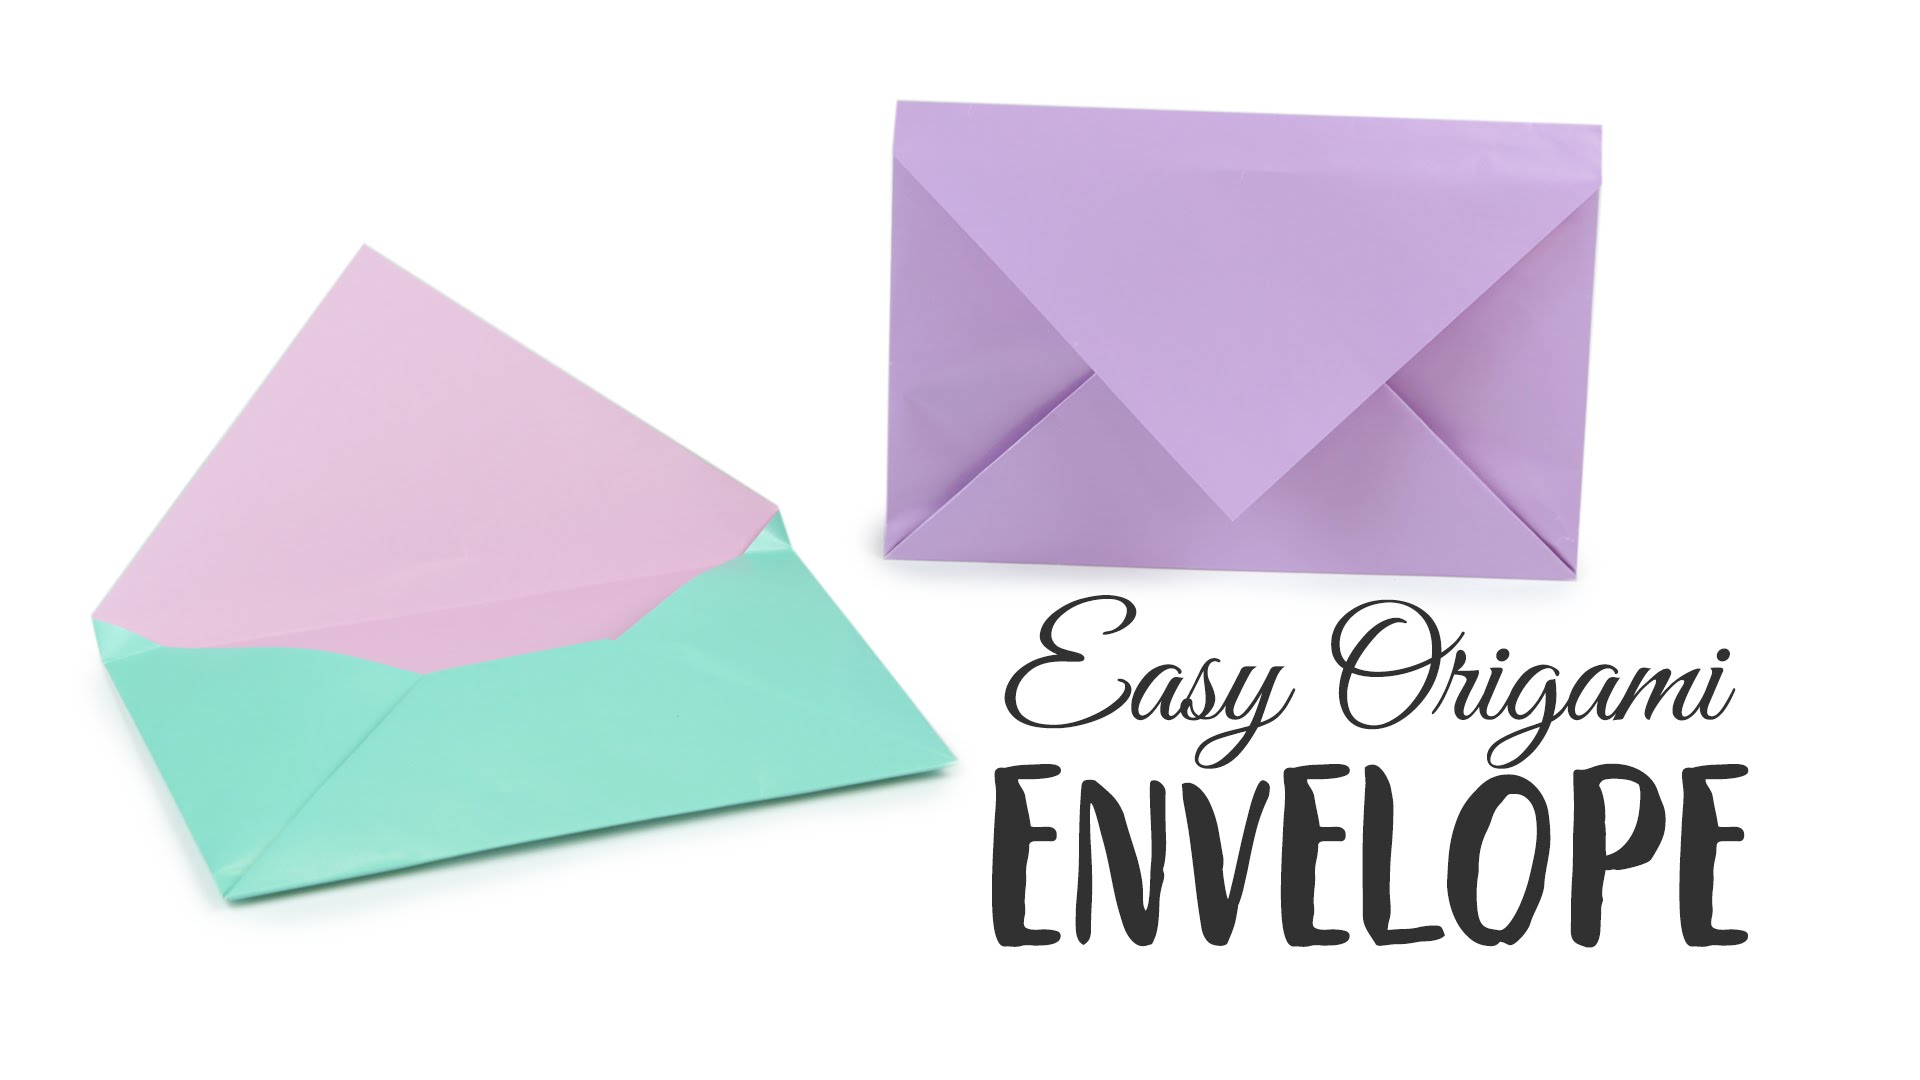 Envelope Origami Easy Super Easy Origami Envelope Tutorial Diy Paper Kawaii Youtube